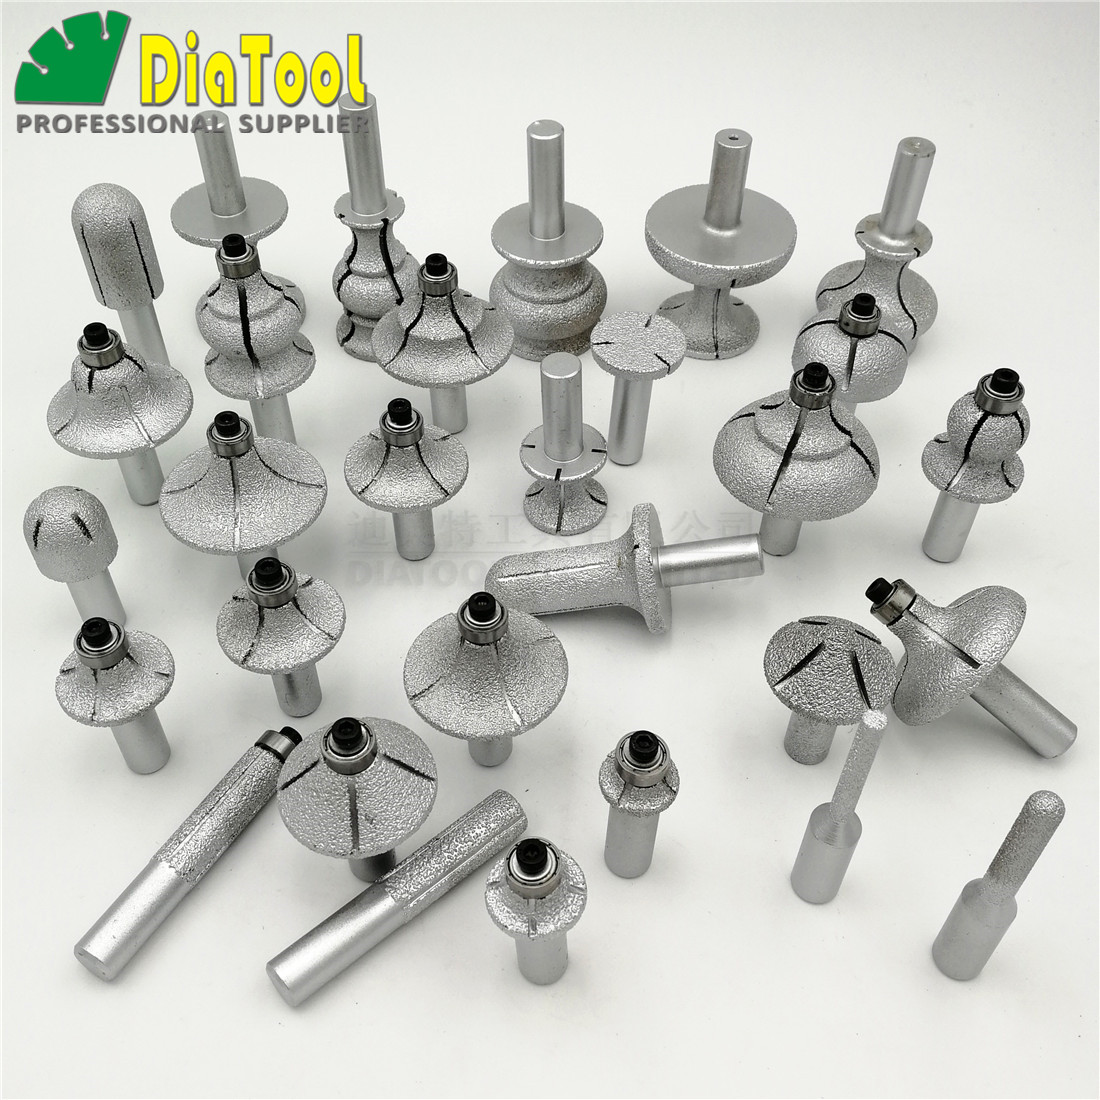 Tools Hearty Shdiatool 1pc Vacuum Brazed Diamond Router Bits With 1/2 Shank For Stone Router Cutter For Granite & Marble In Pain